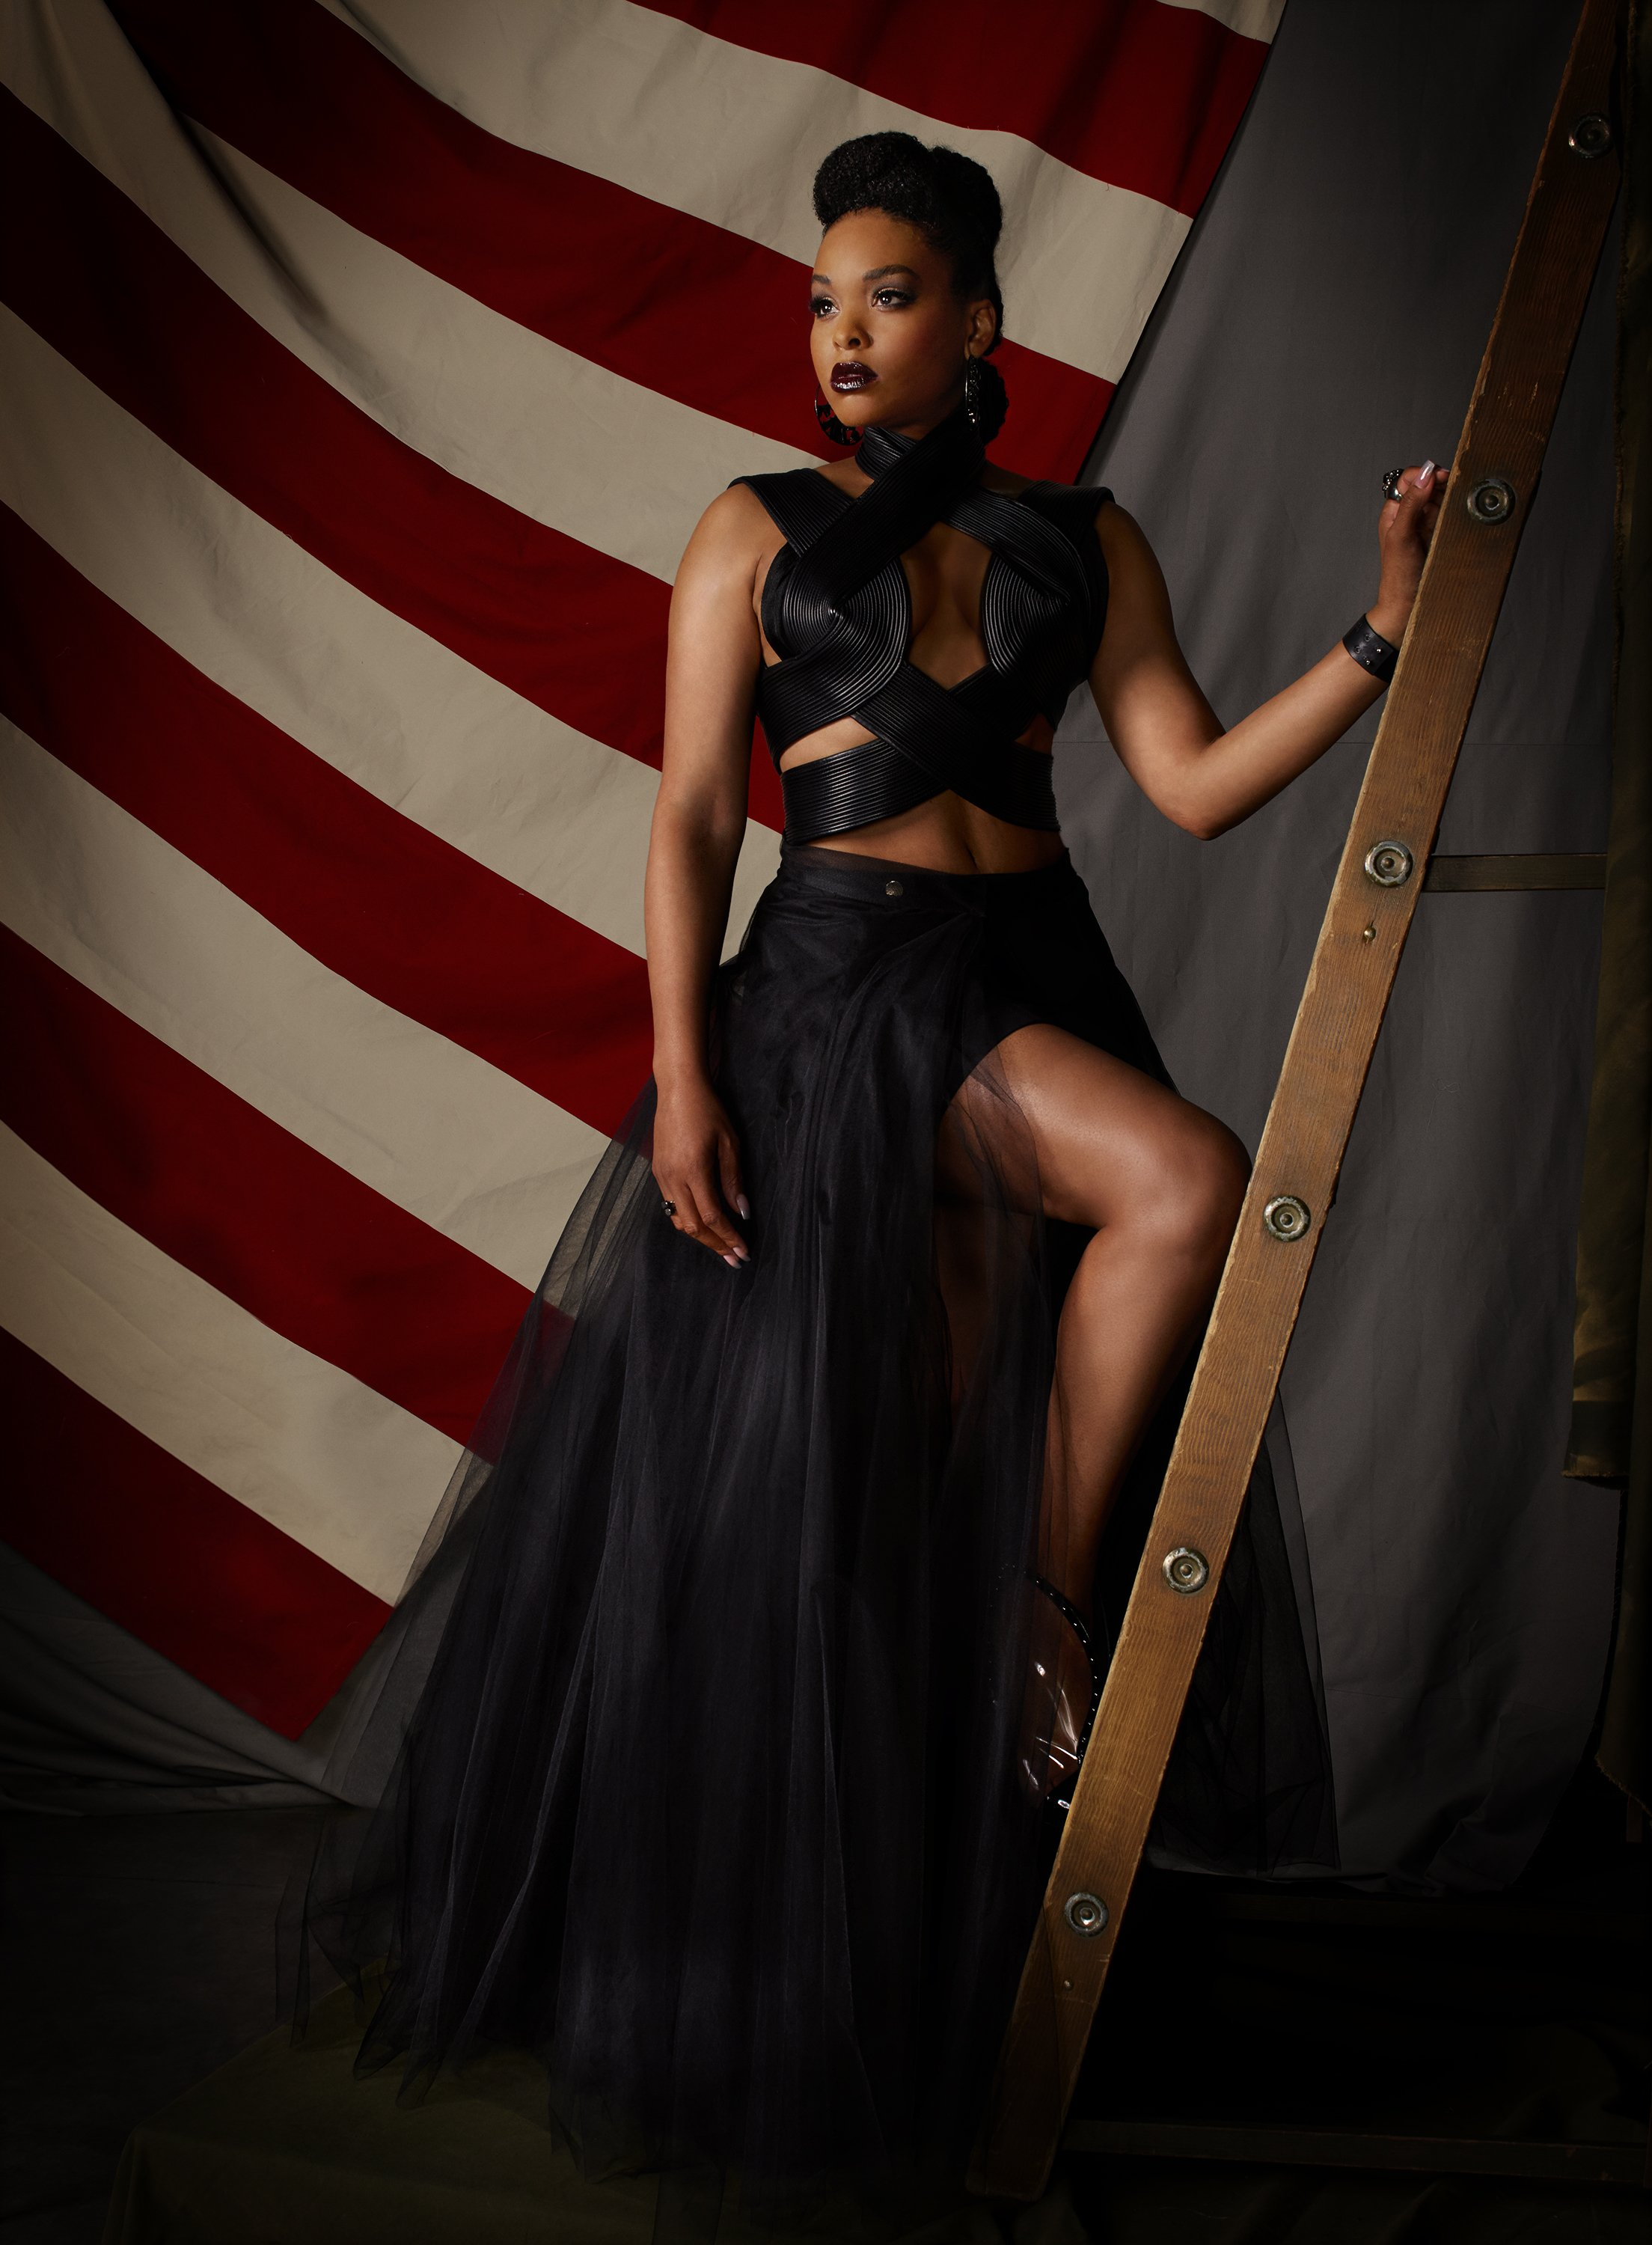 """Promotional poster for Freeform's """"Motherland: Fort Salem"""" starring Demetria McKinney as Anacostia.  Source: Getty Images"""